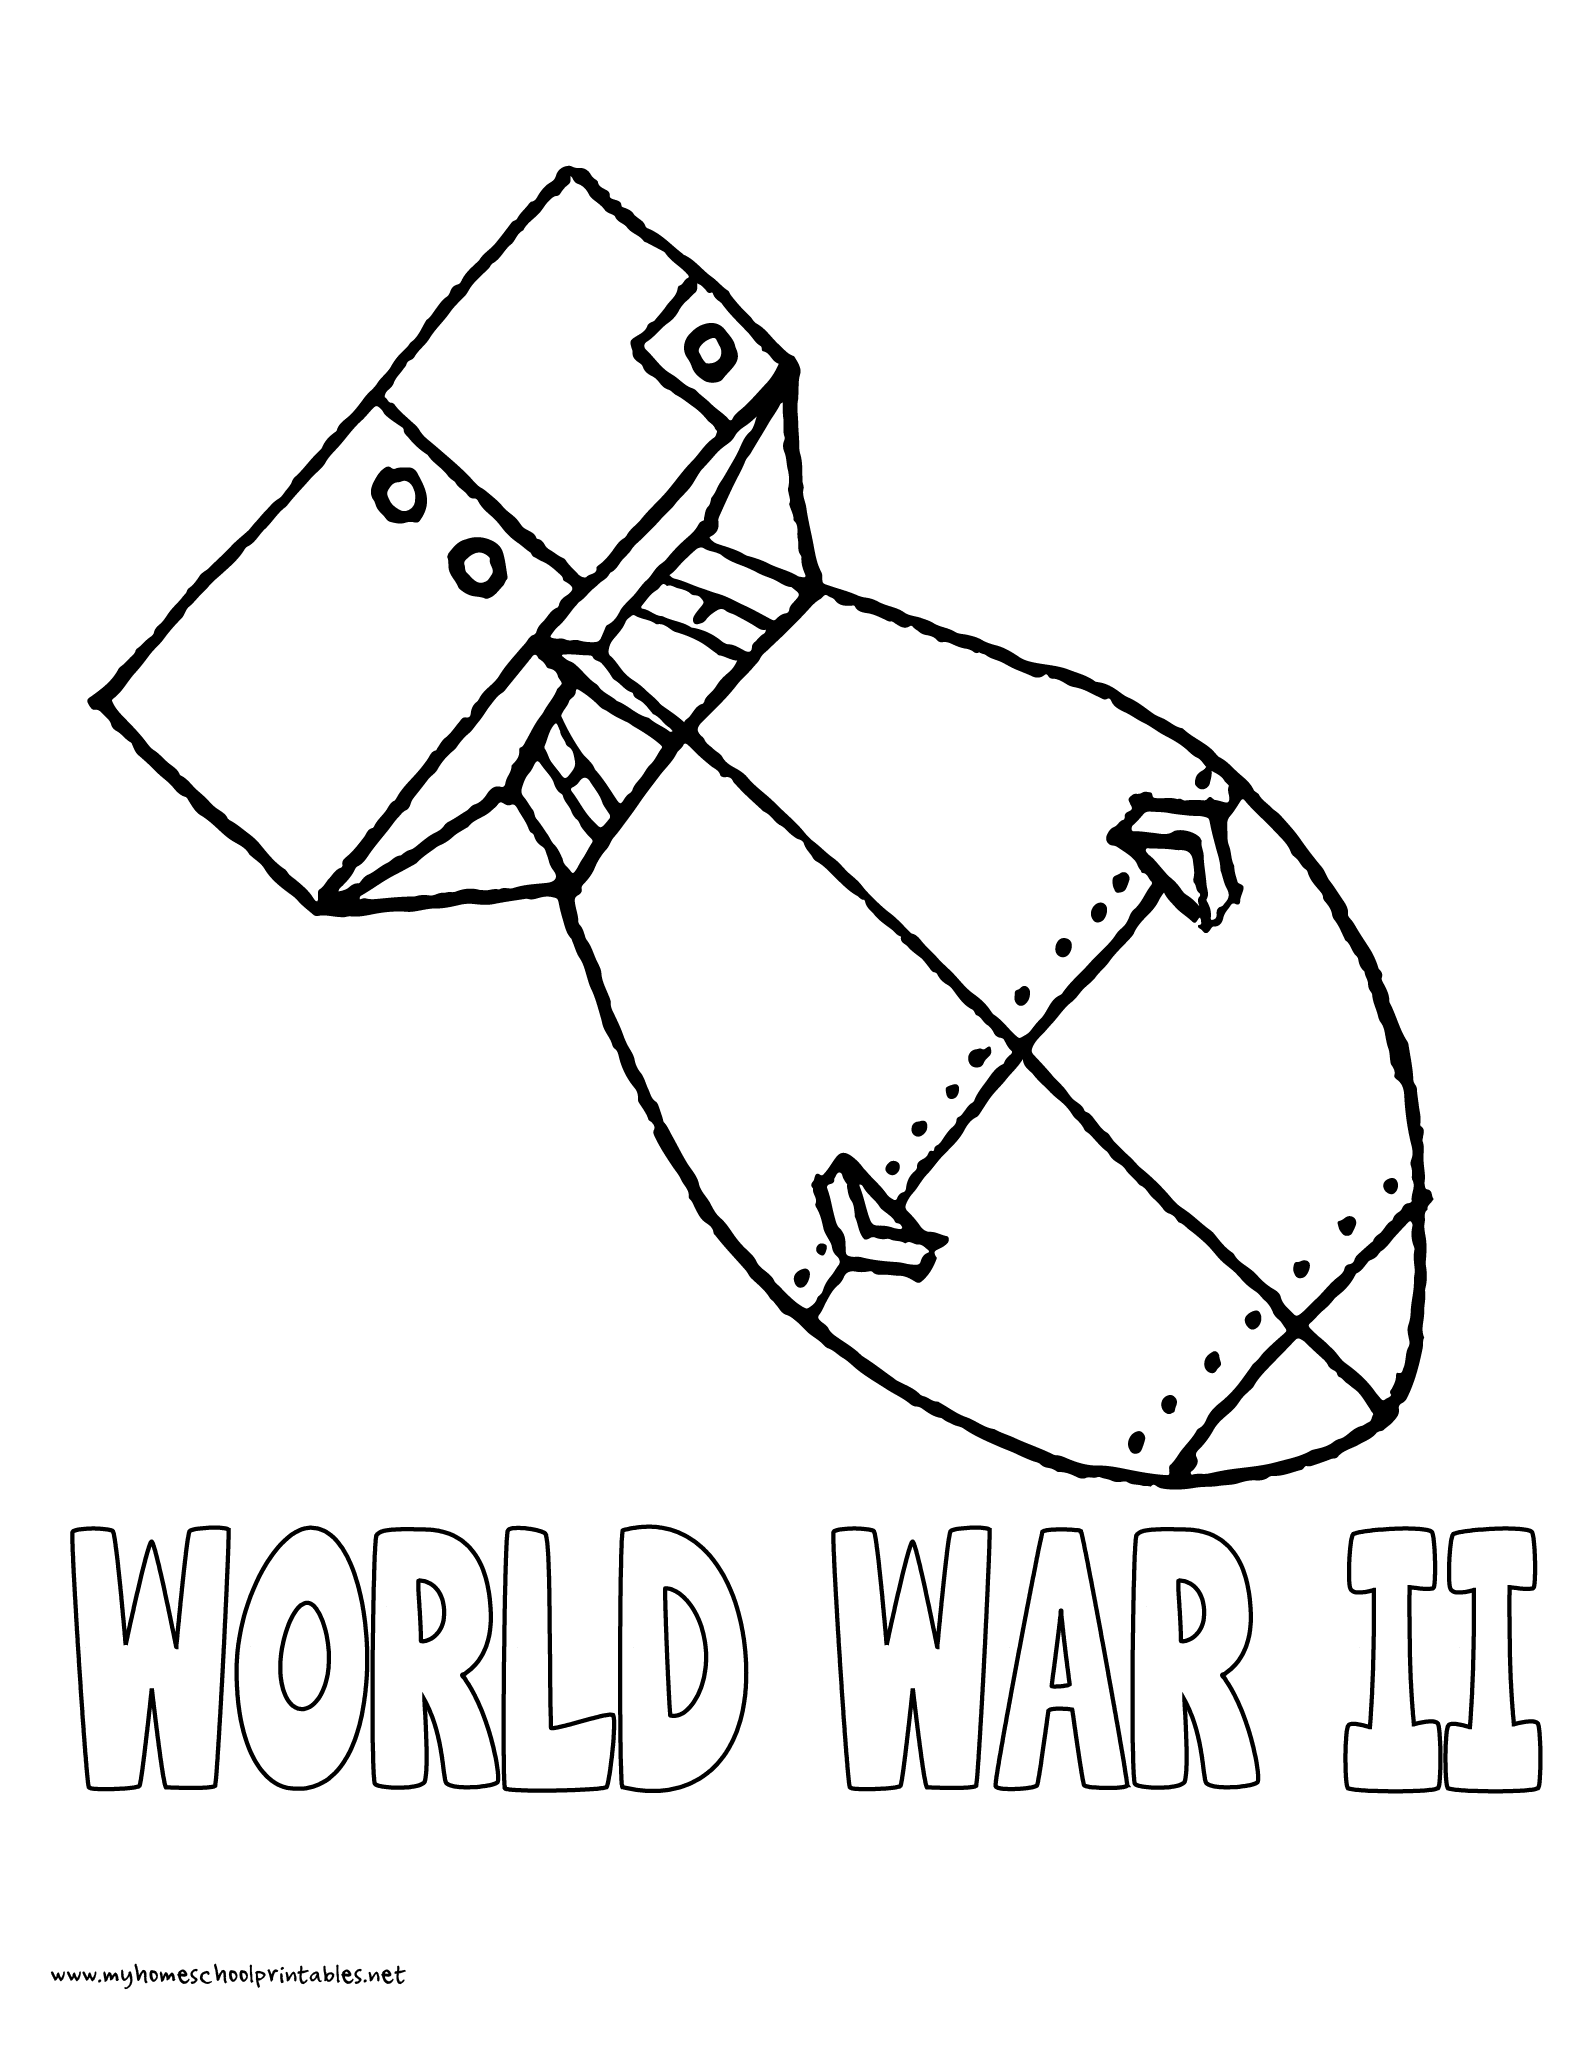 world war 2 pictures to colour my homeschool printables history coloring pages volume 4 war 2 pictures colour to world